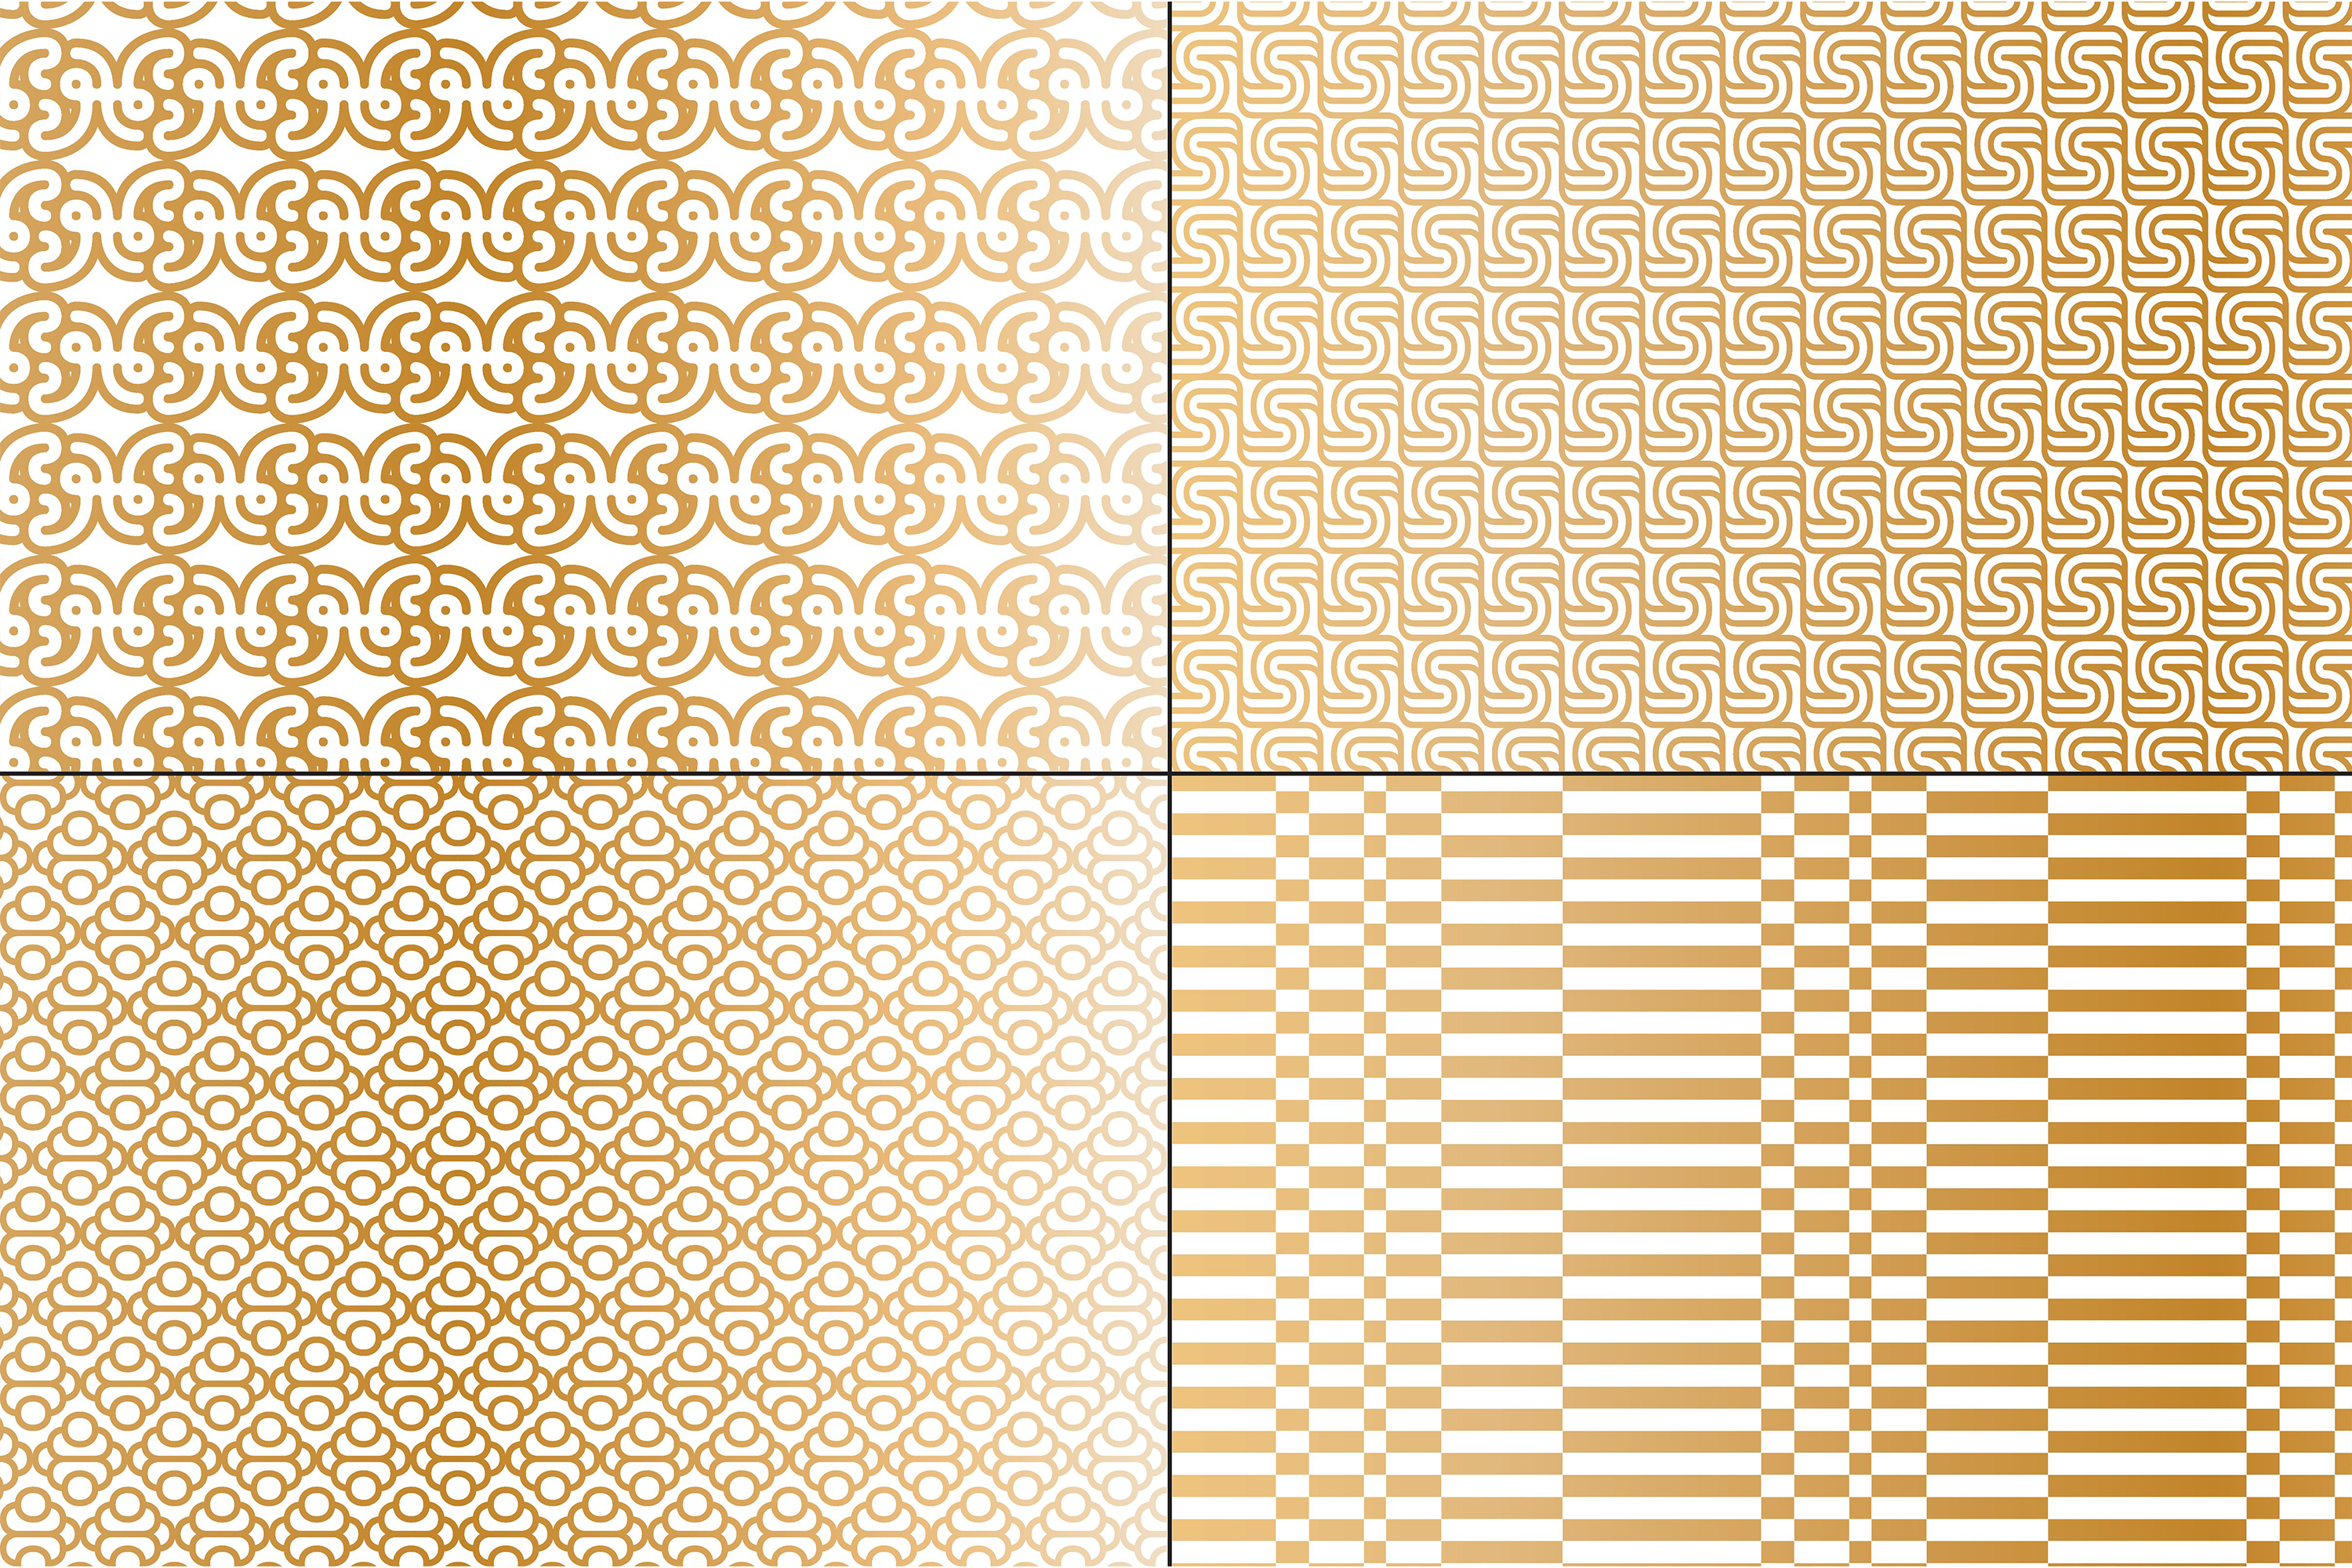 Copper & White Mod Geometrics example image 2